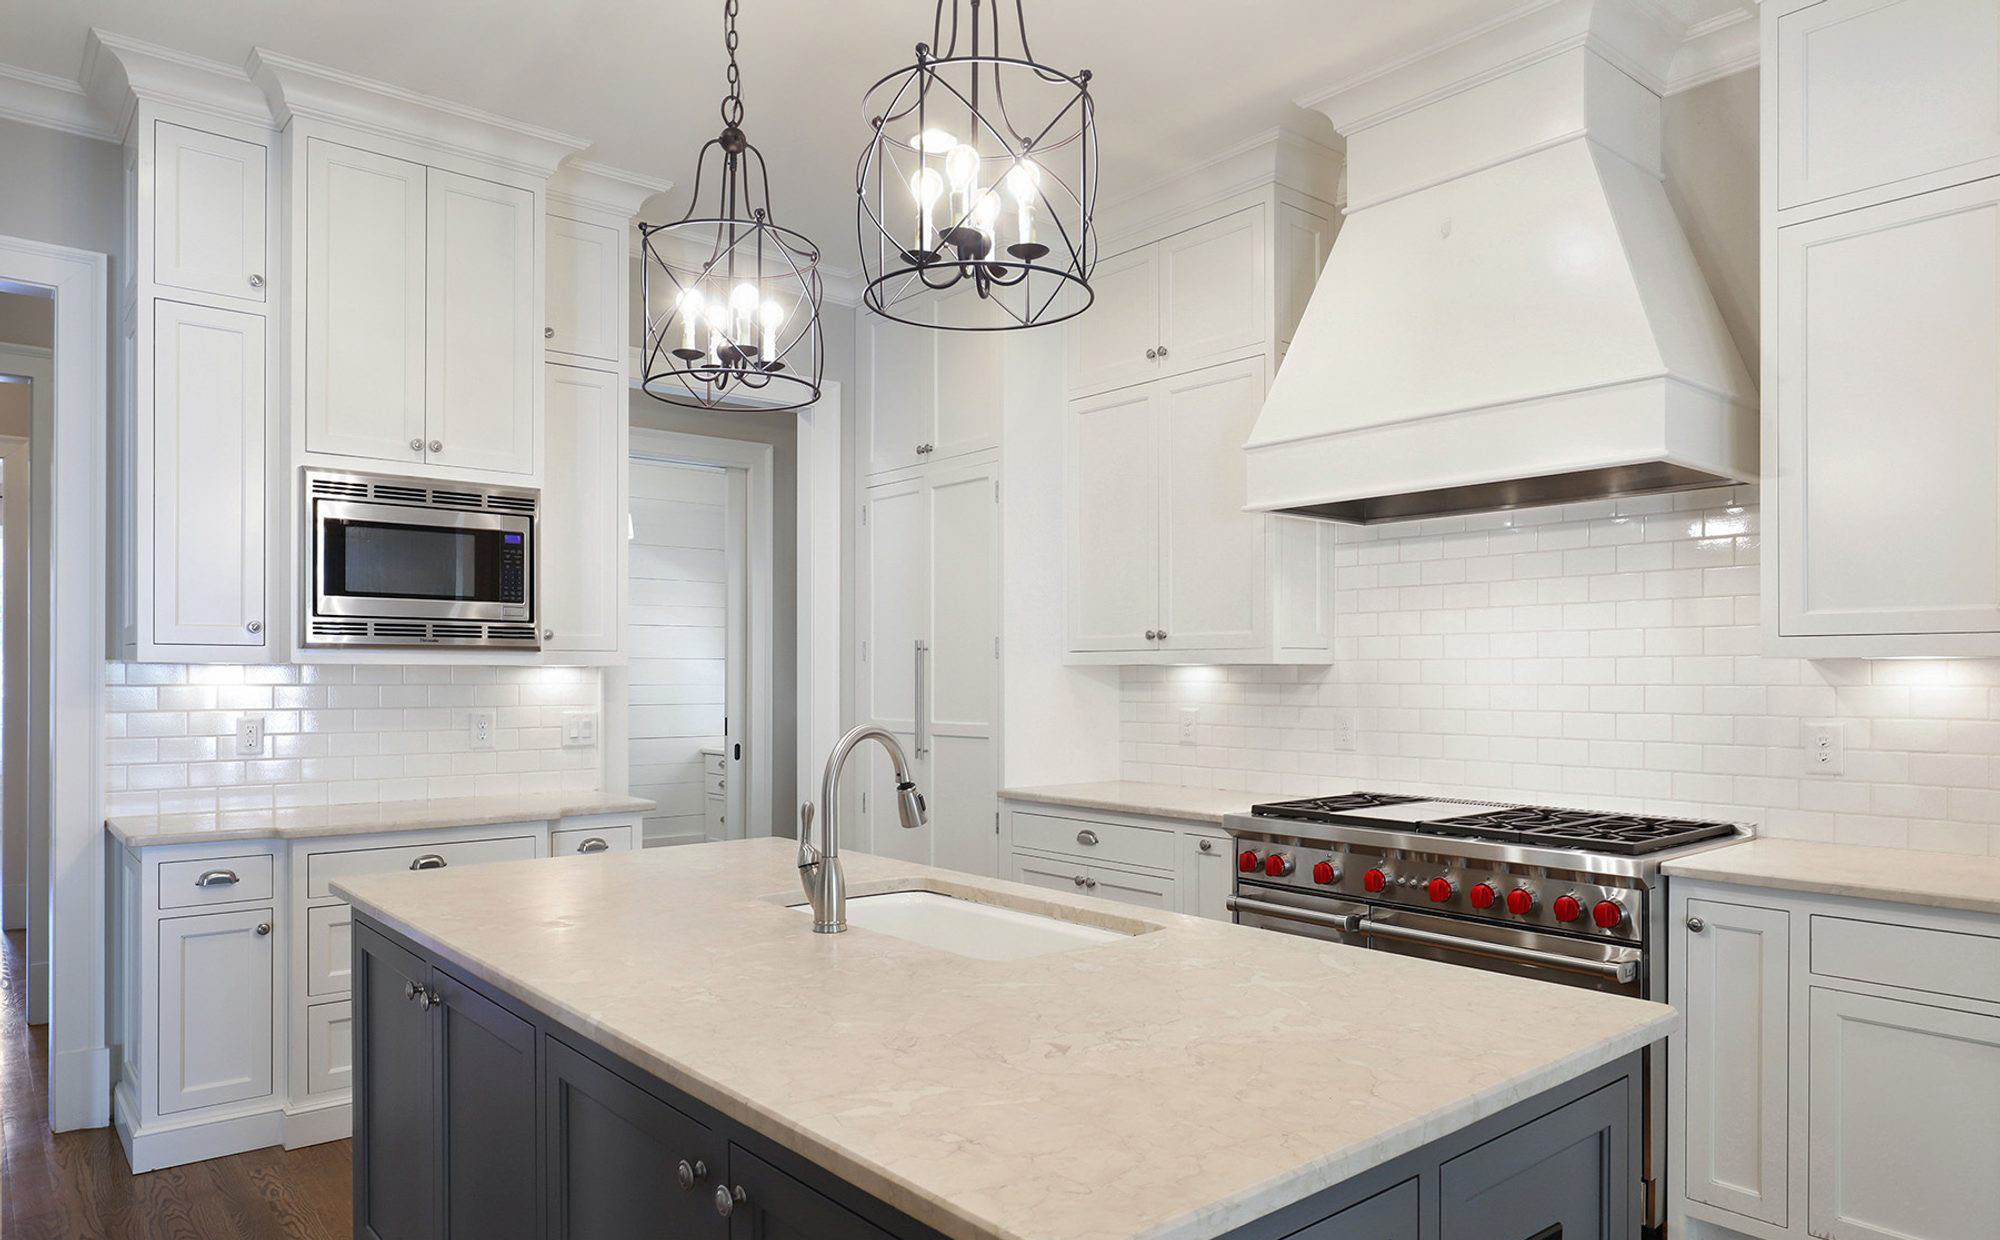 This medium gray island is a nice choice along side the white shaker style cabinetry. two tone kitchen cabinets.